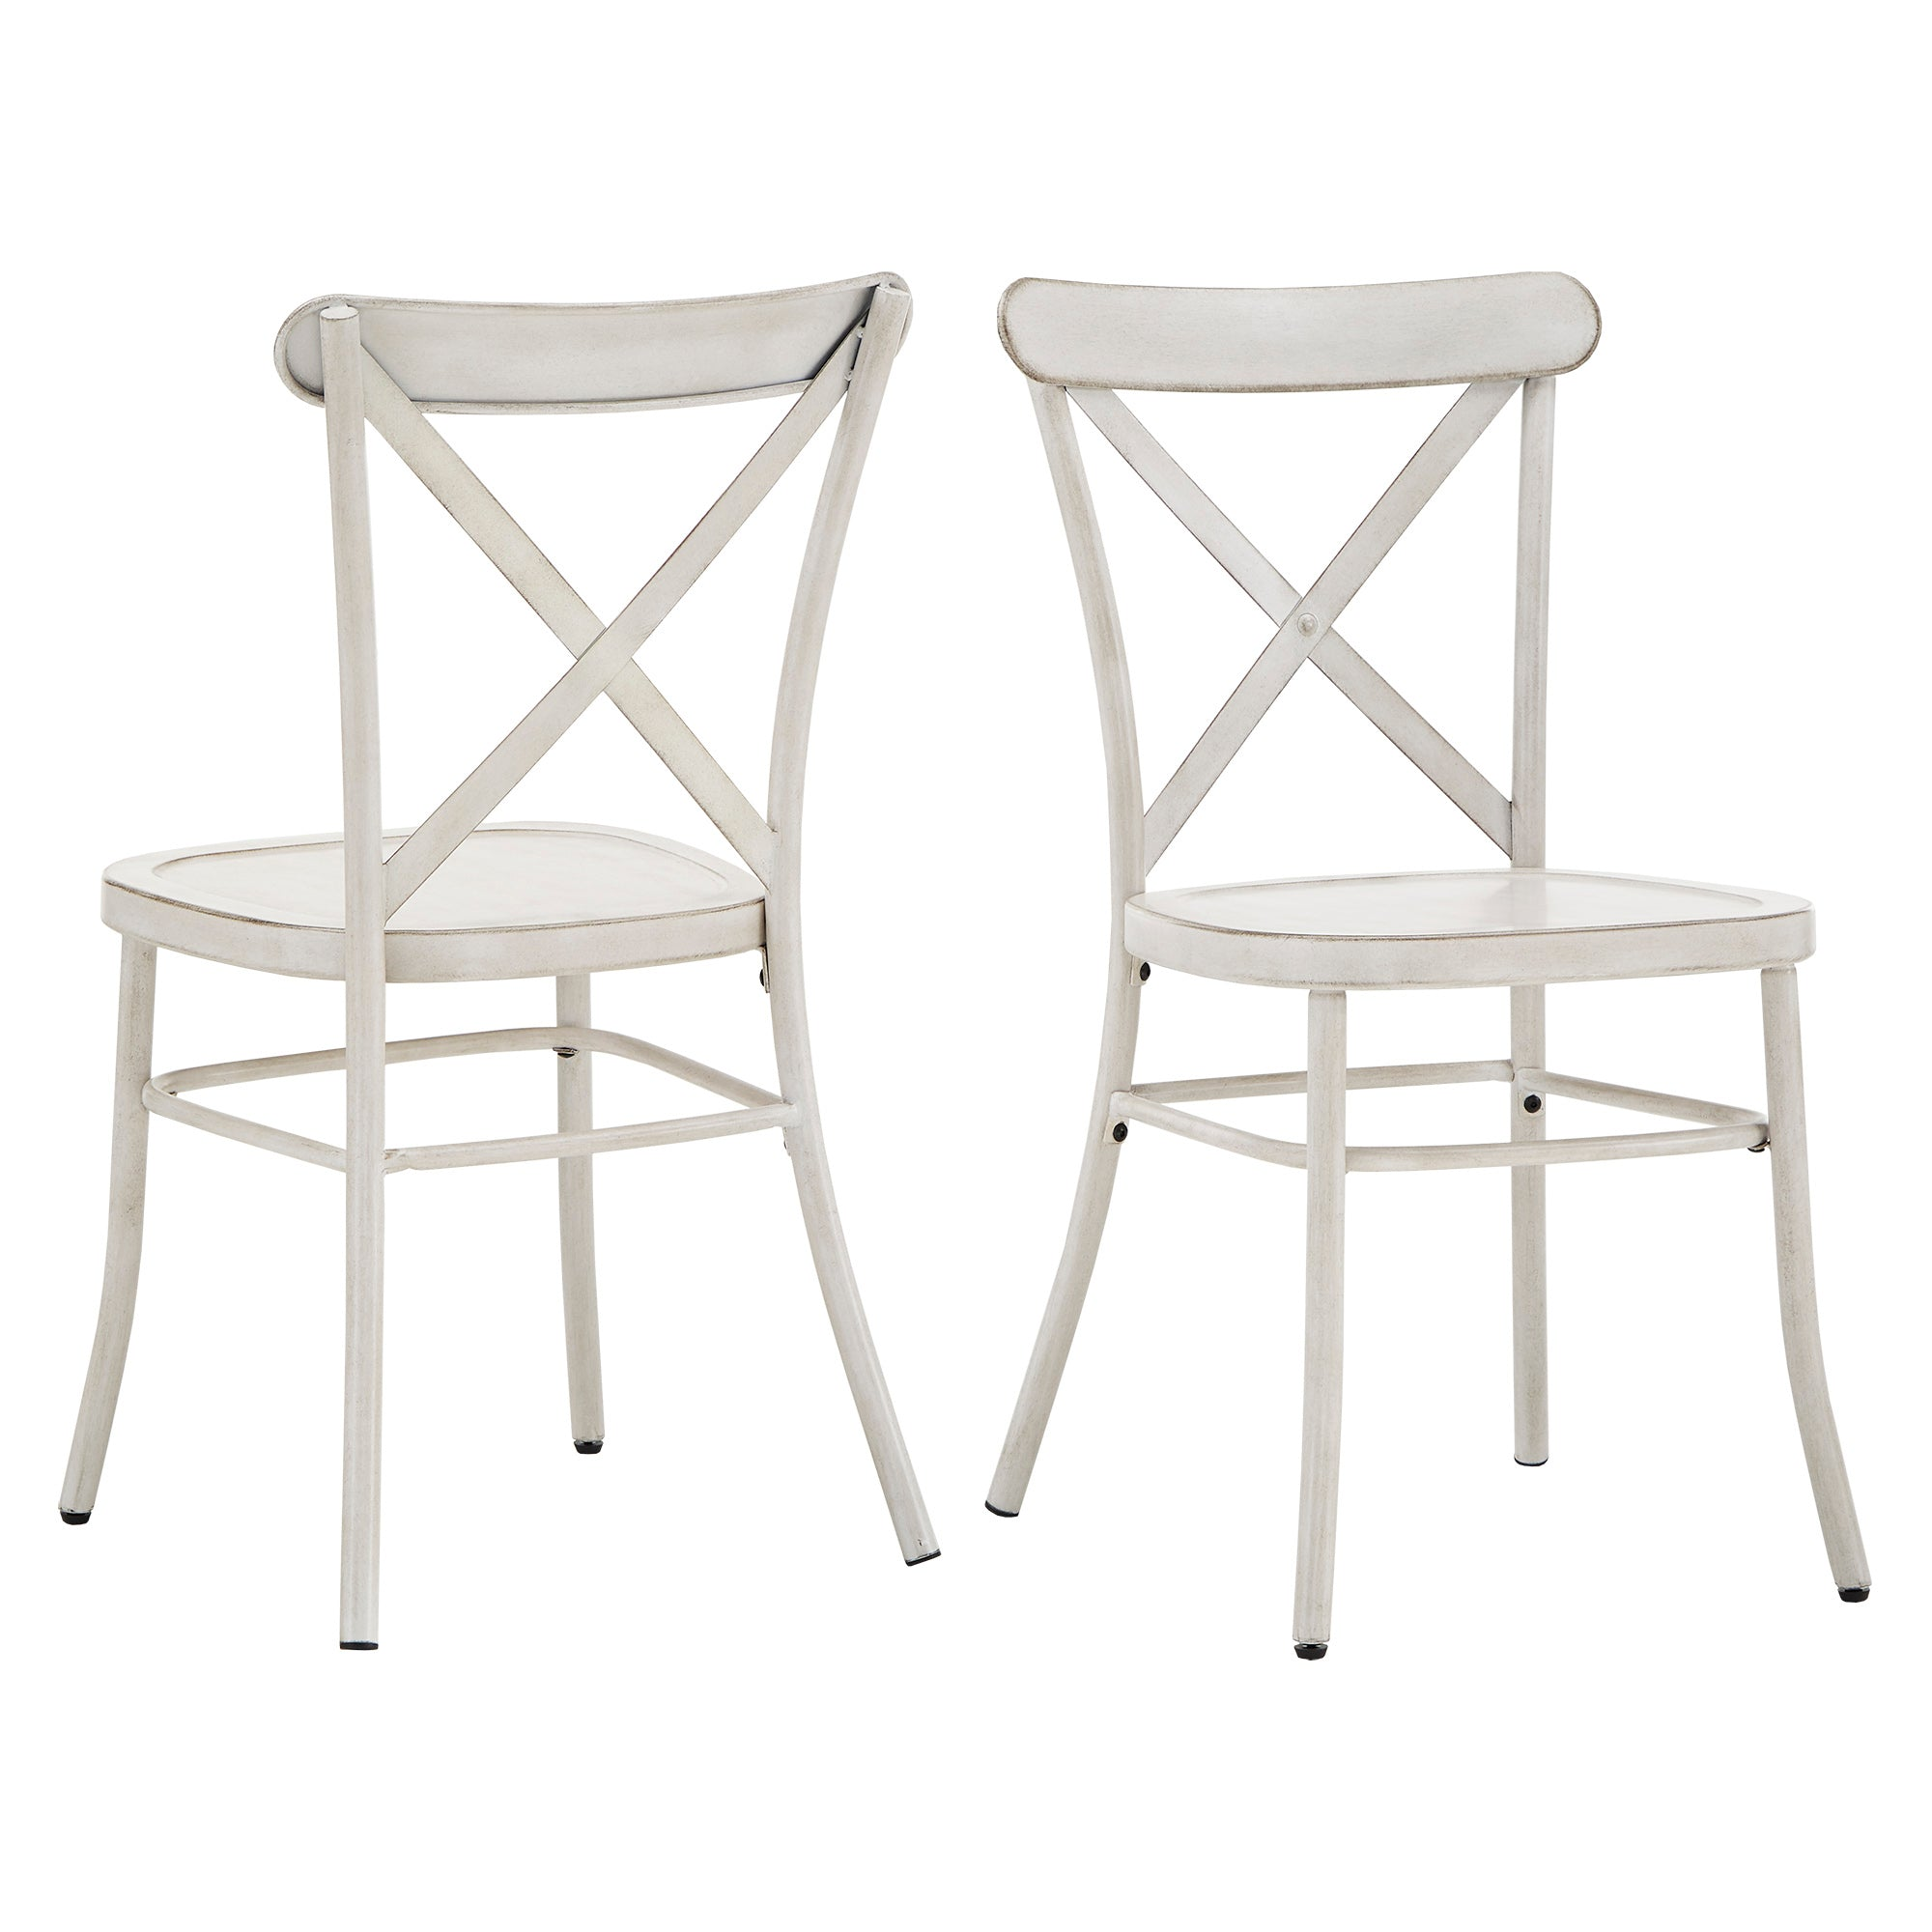 Metal Dining Chair (Set of 2) - Antique White Finish